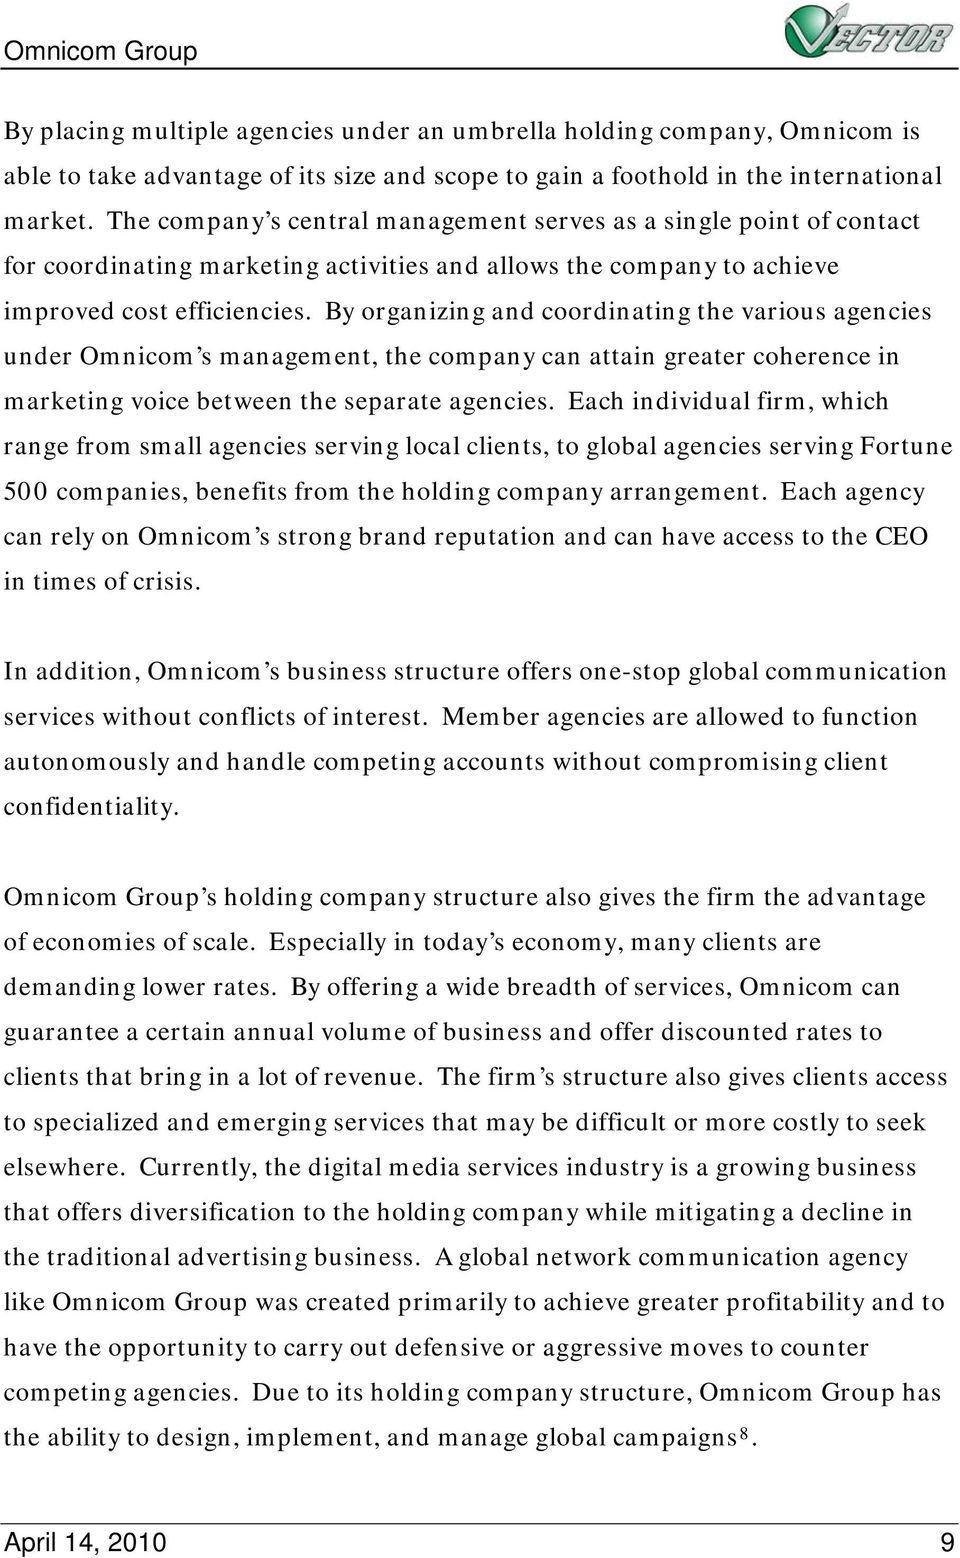 By organizing and coordinating the various agencies under Omnicom s management, the company can attain greater coherence in marketing voice between the separate agencies.